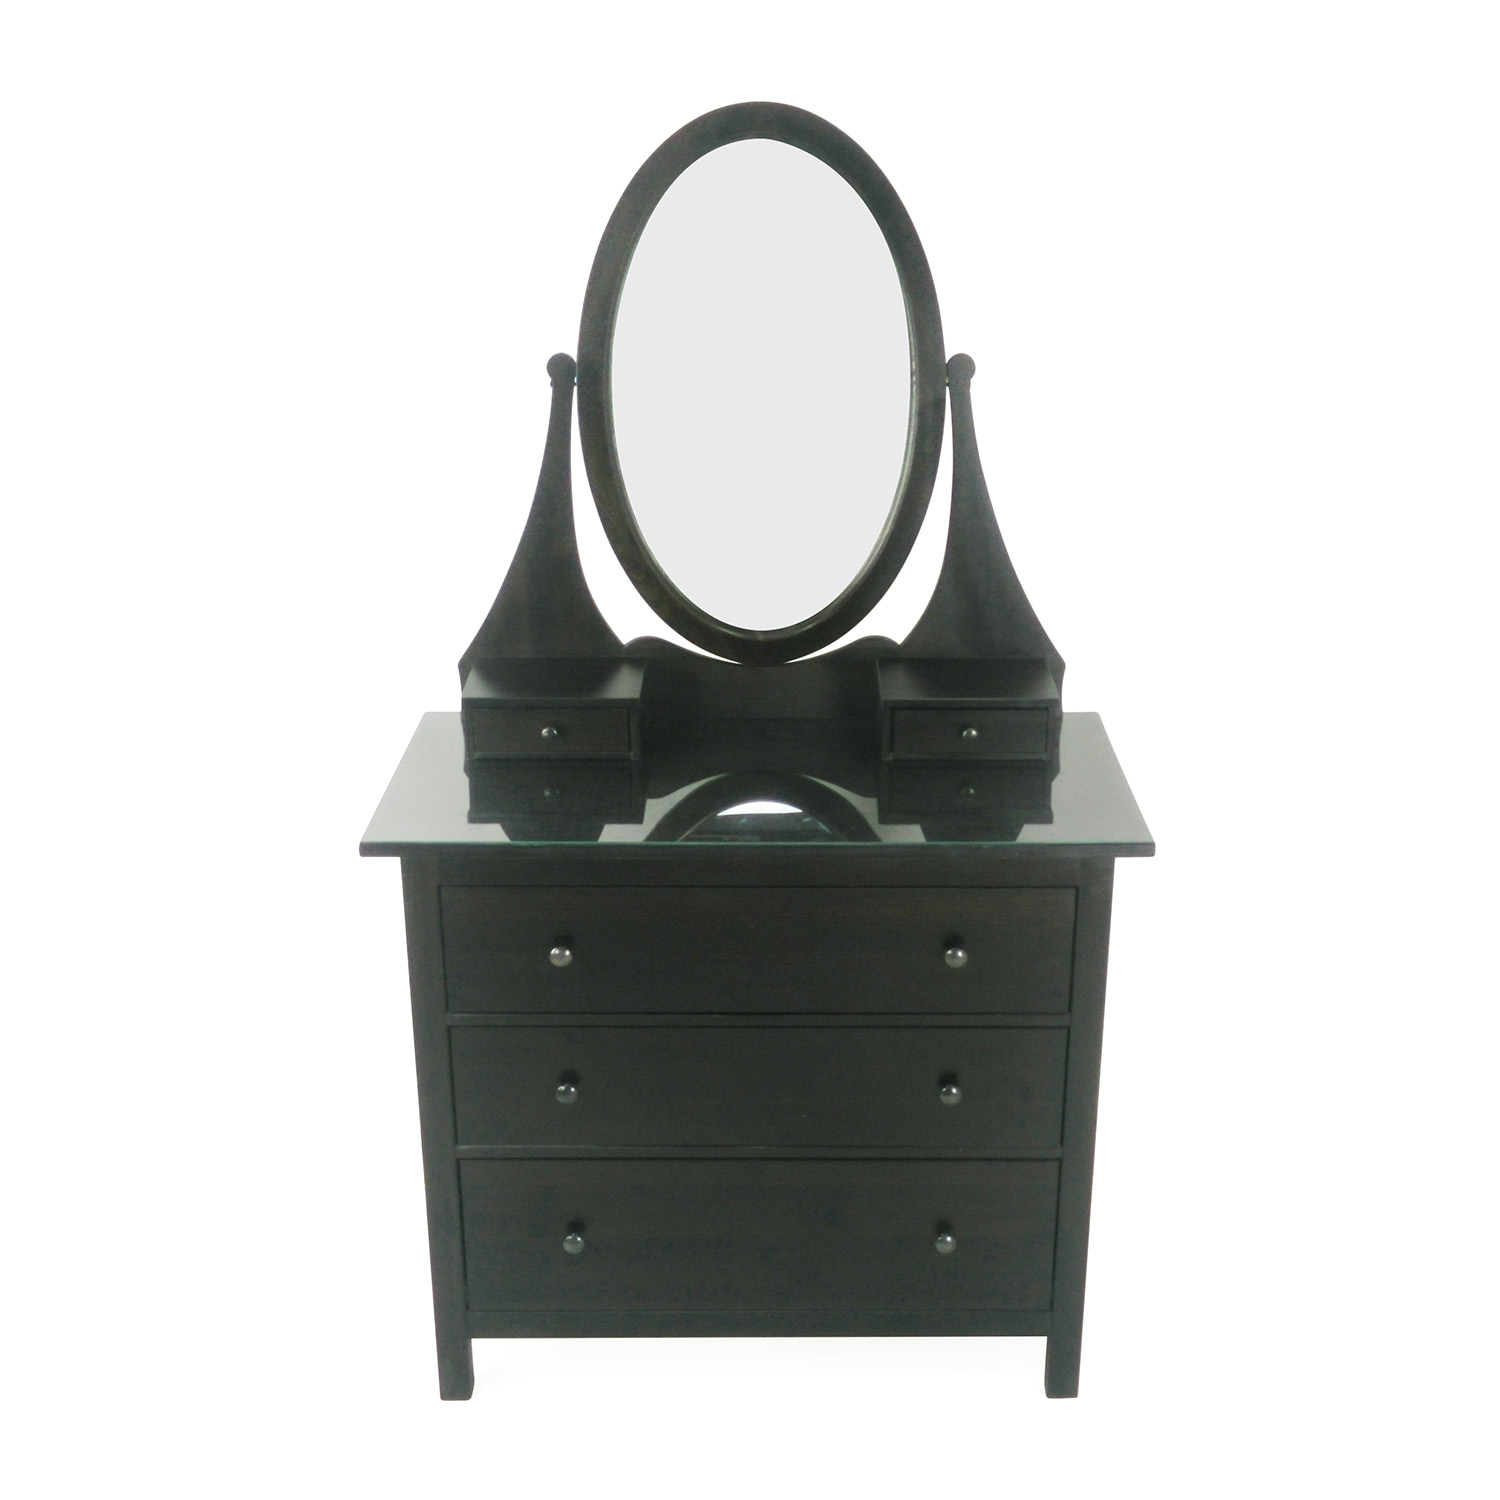 IKEA Three Drawer Dresser with Mirror second hand